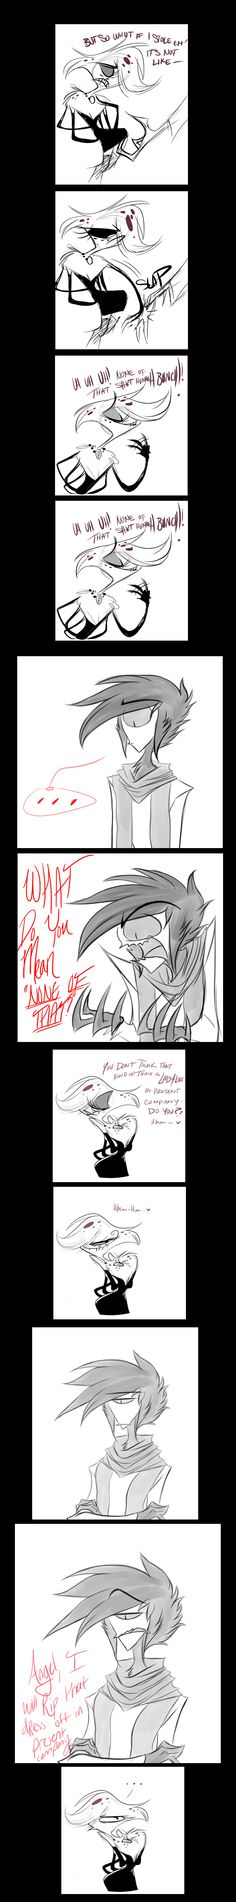 Vivziepop's Comic: Angel & Tyco (Faust's) Part 2  Found @:  http://zikkafriday.tumblr.com/post/58589516391/zoophobiacrazies-pill-dickles